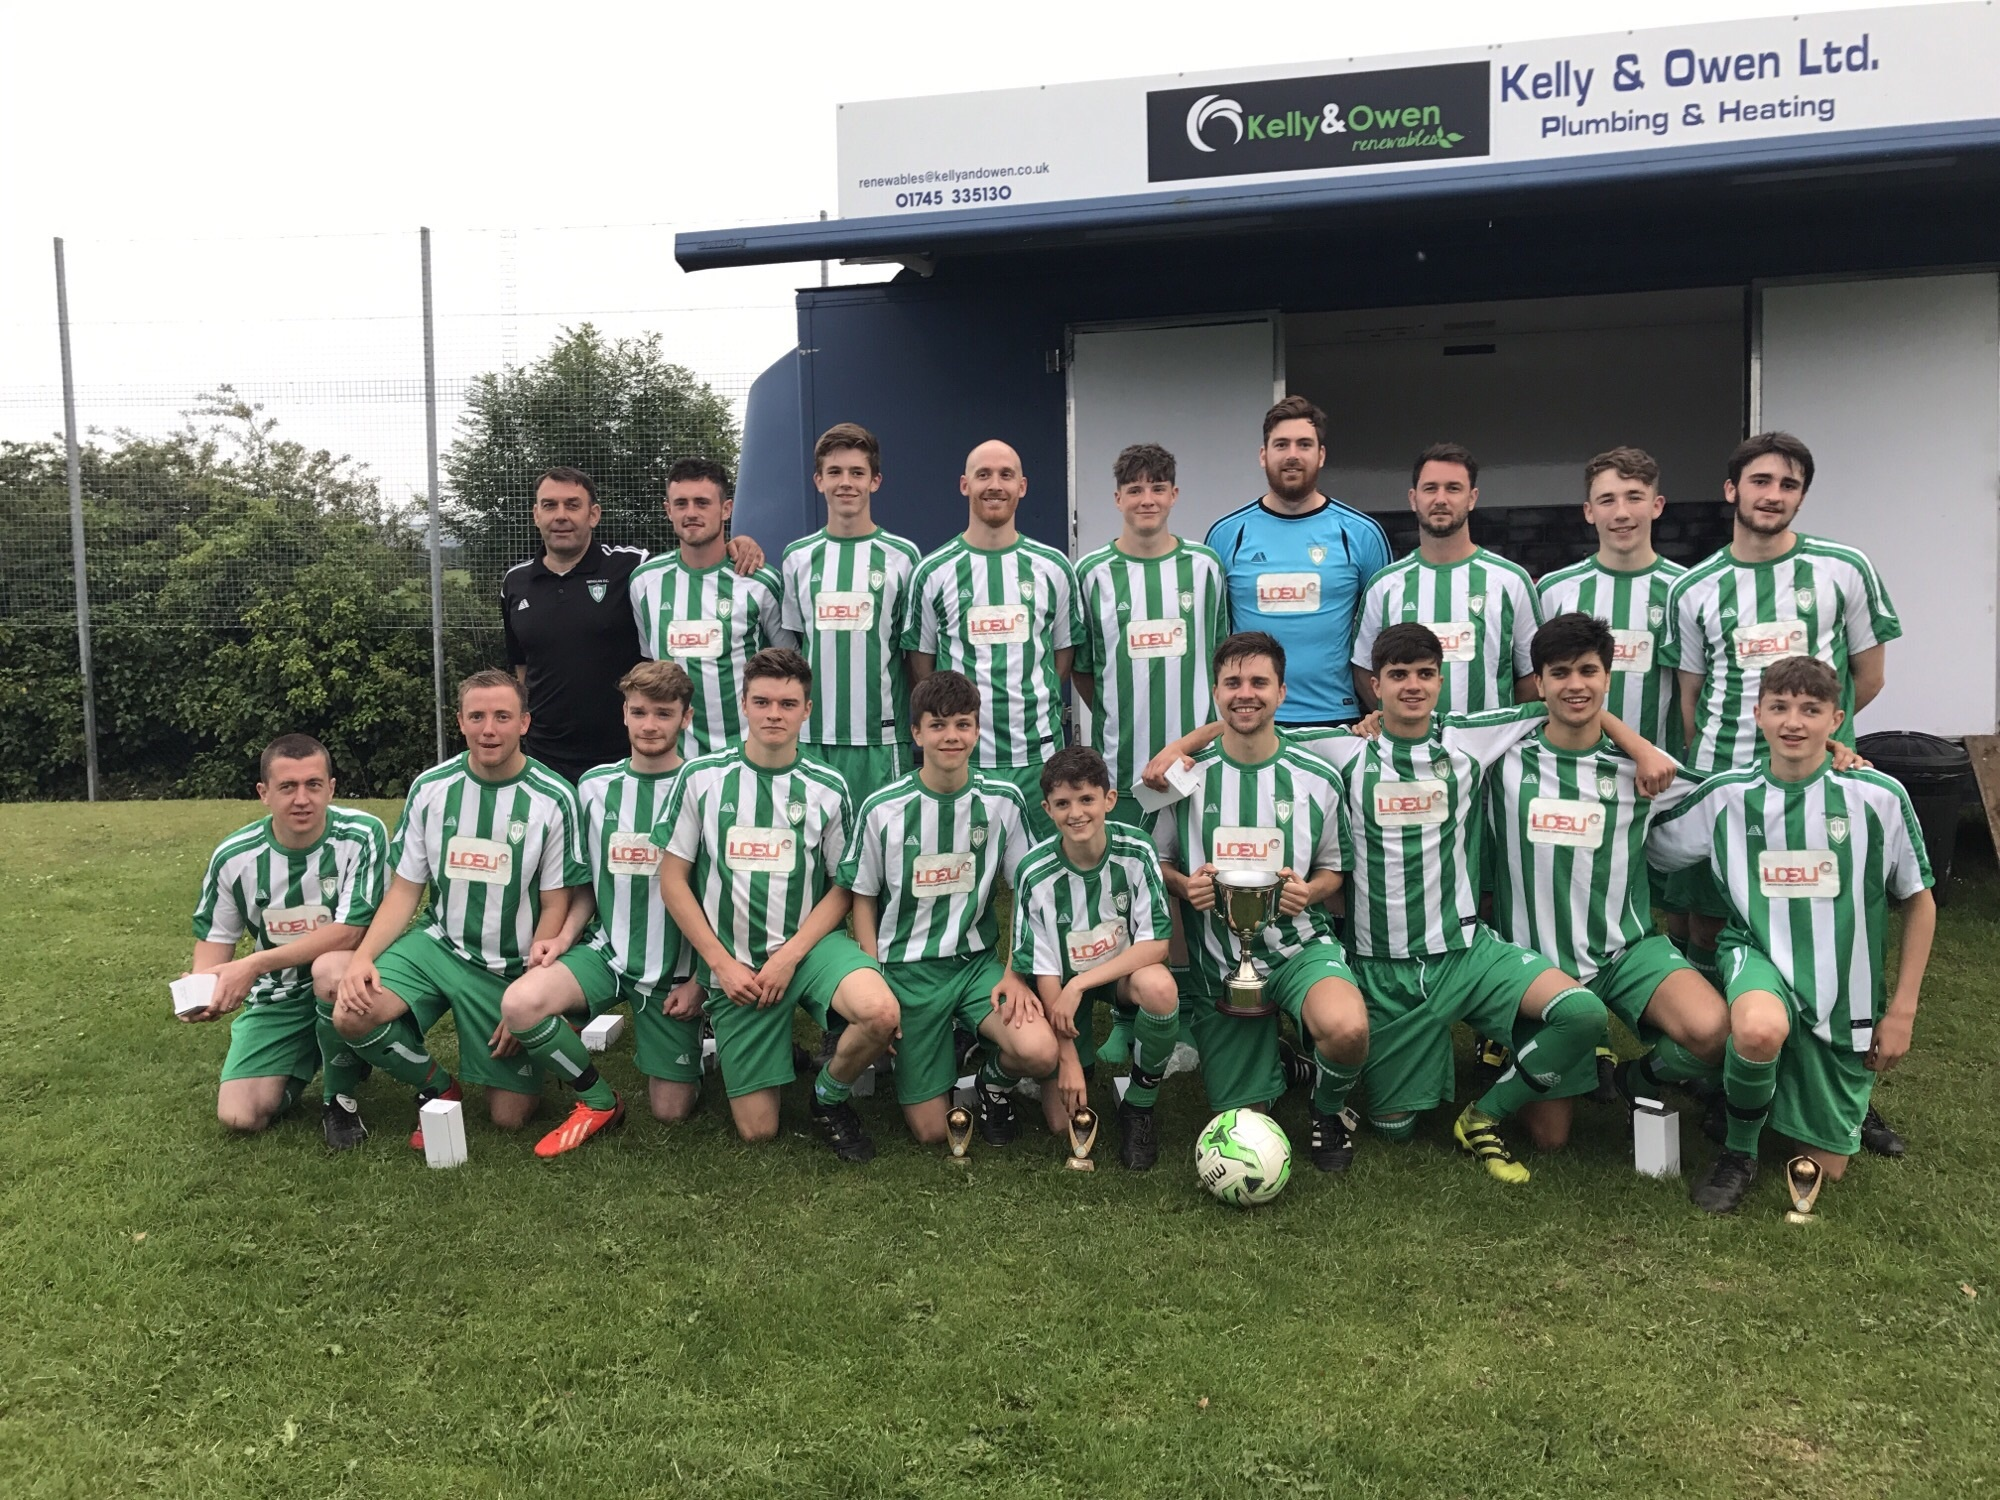 2017 Llandyrnog and District Champions HENLLAN FC sponsored by Lawson Civil Engineering &Utilities Ltd